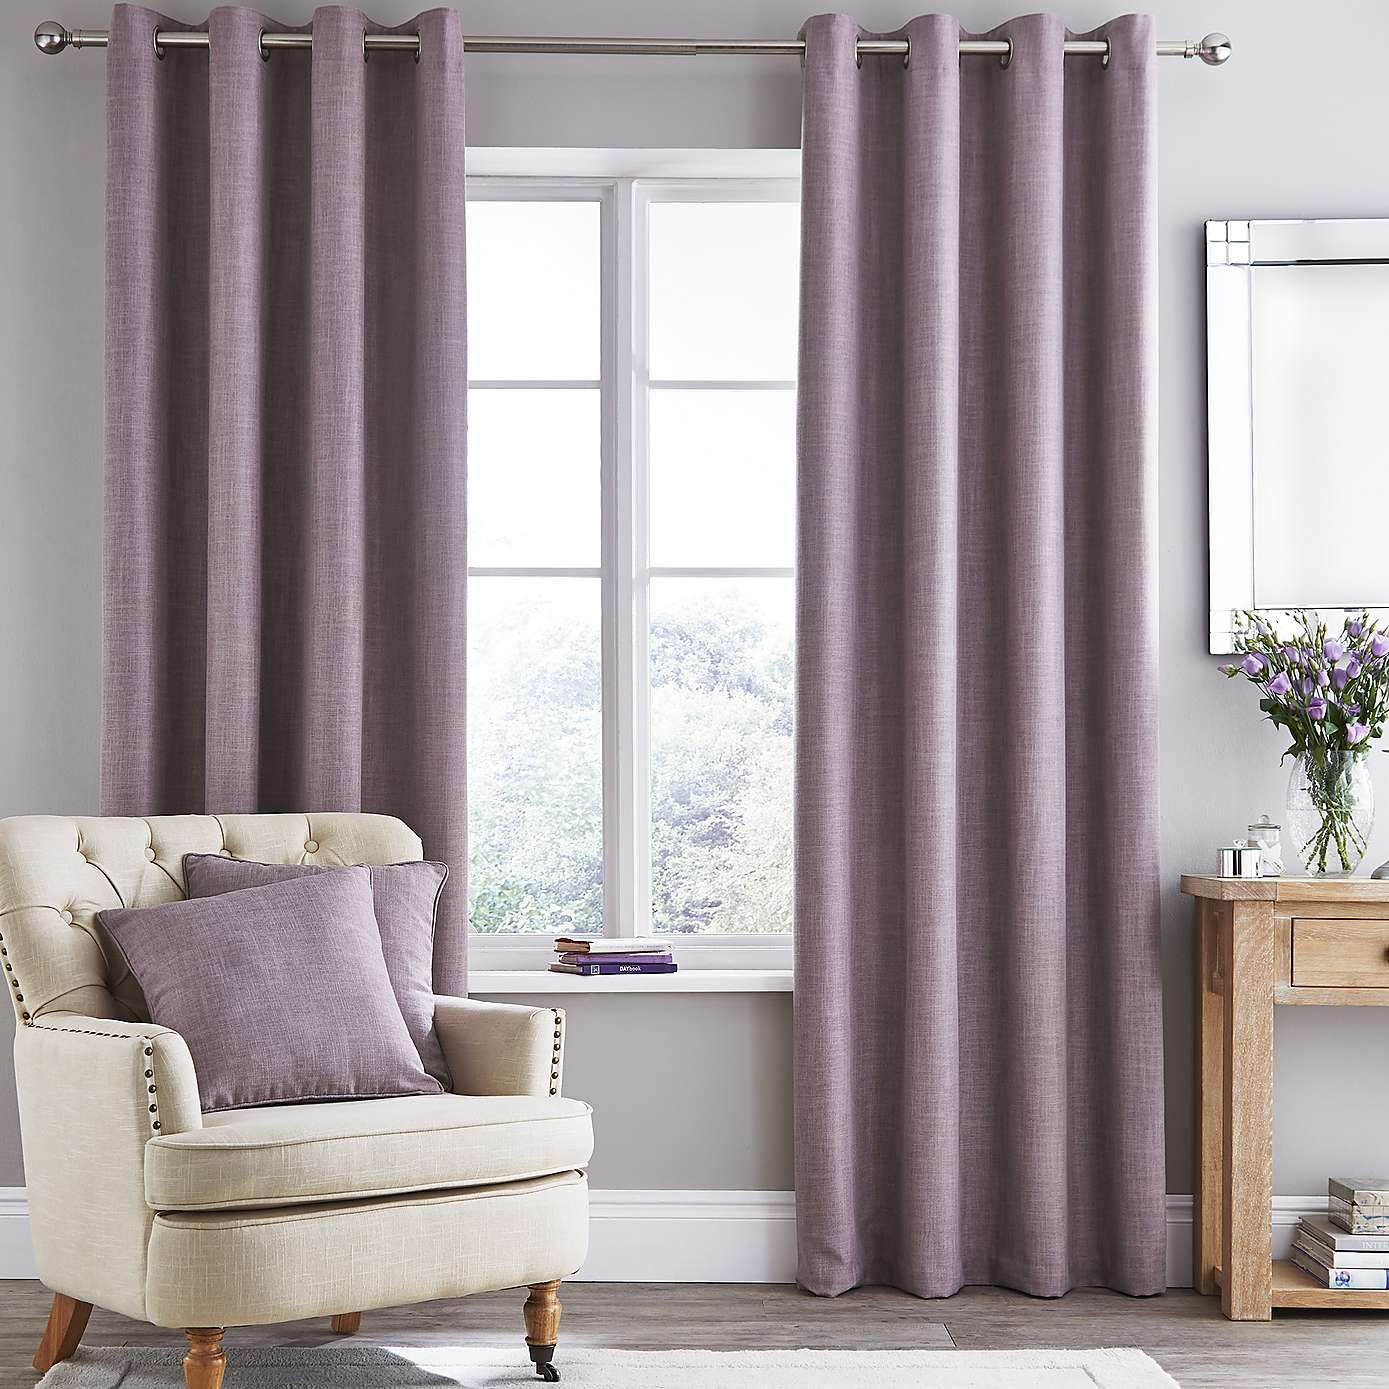 Vermont Mauve Lined Eyelet Curtains Dunelm Mauve Living Room